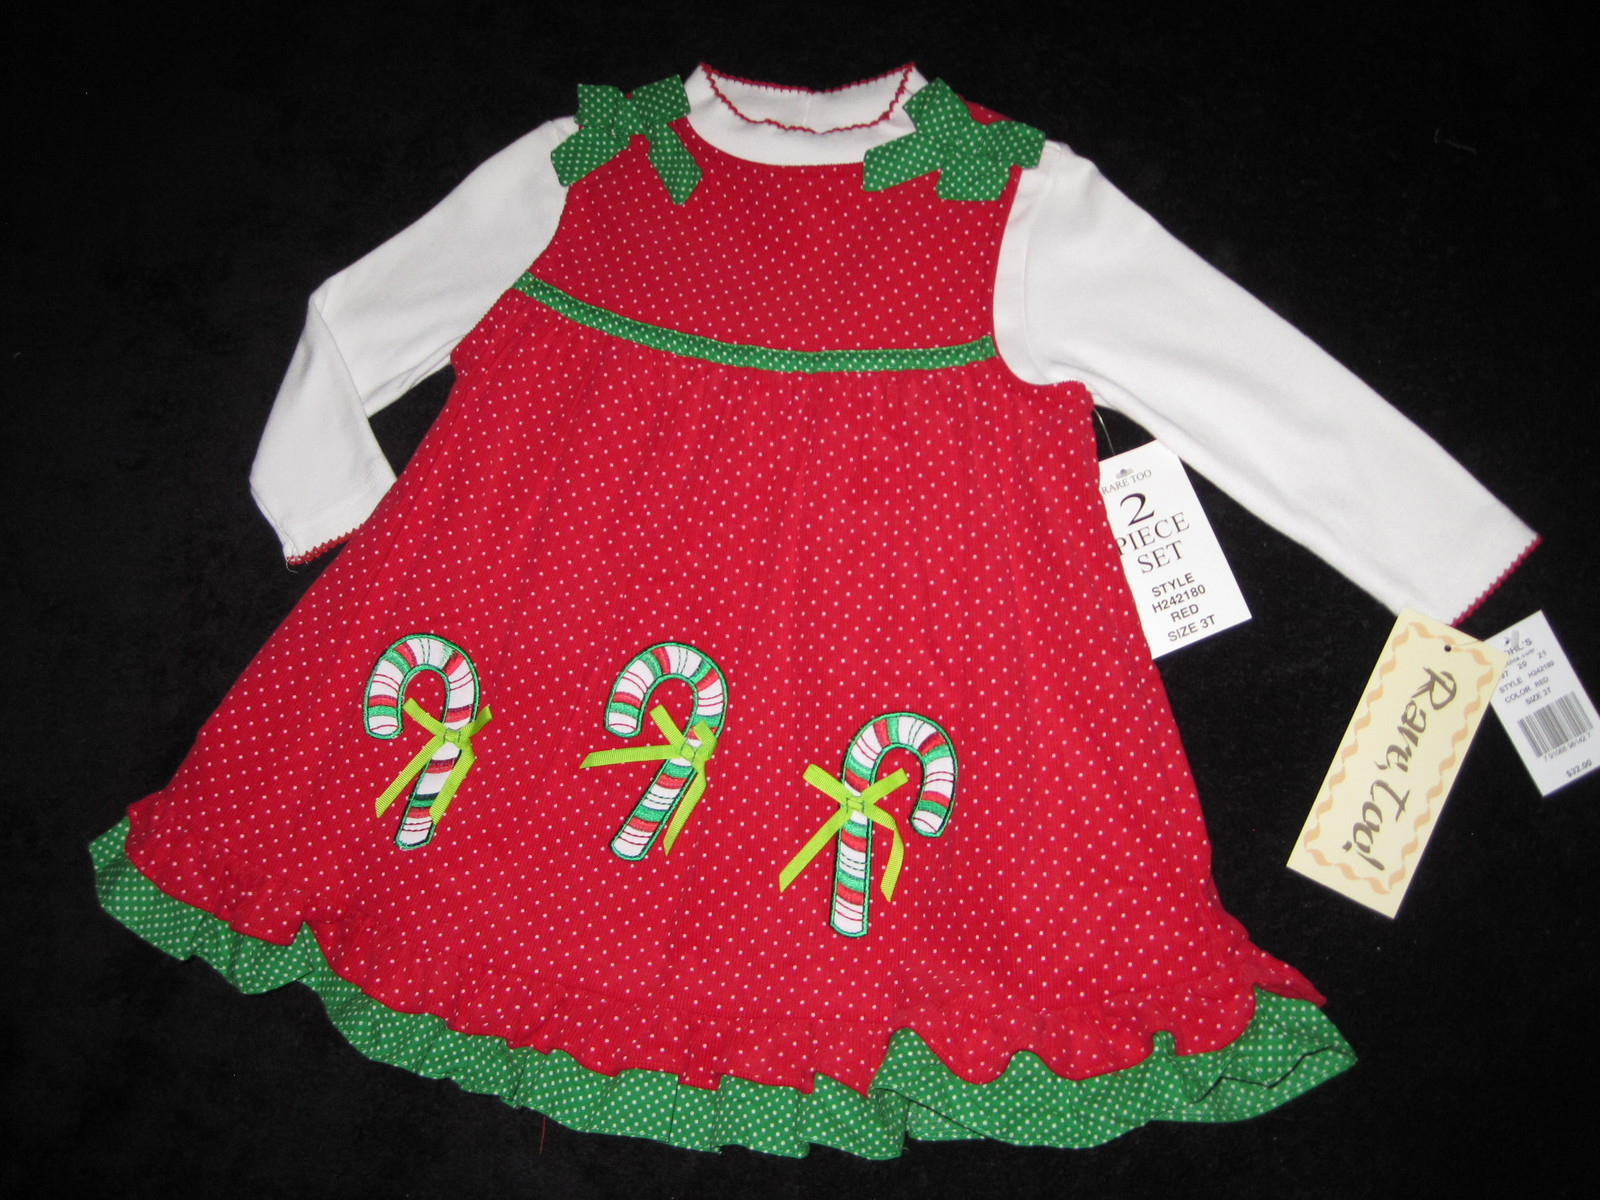 GIRLS 4T - Rare Too -  Candy Canes on Red Corduroy HOLIDAY JUMPER SET image 3